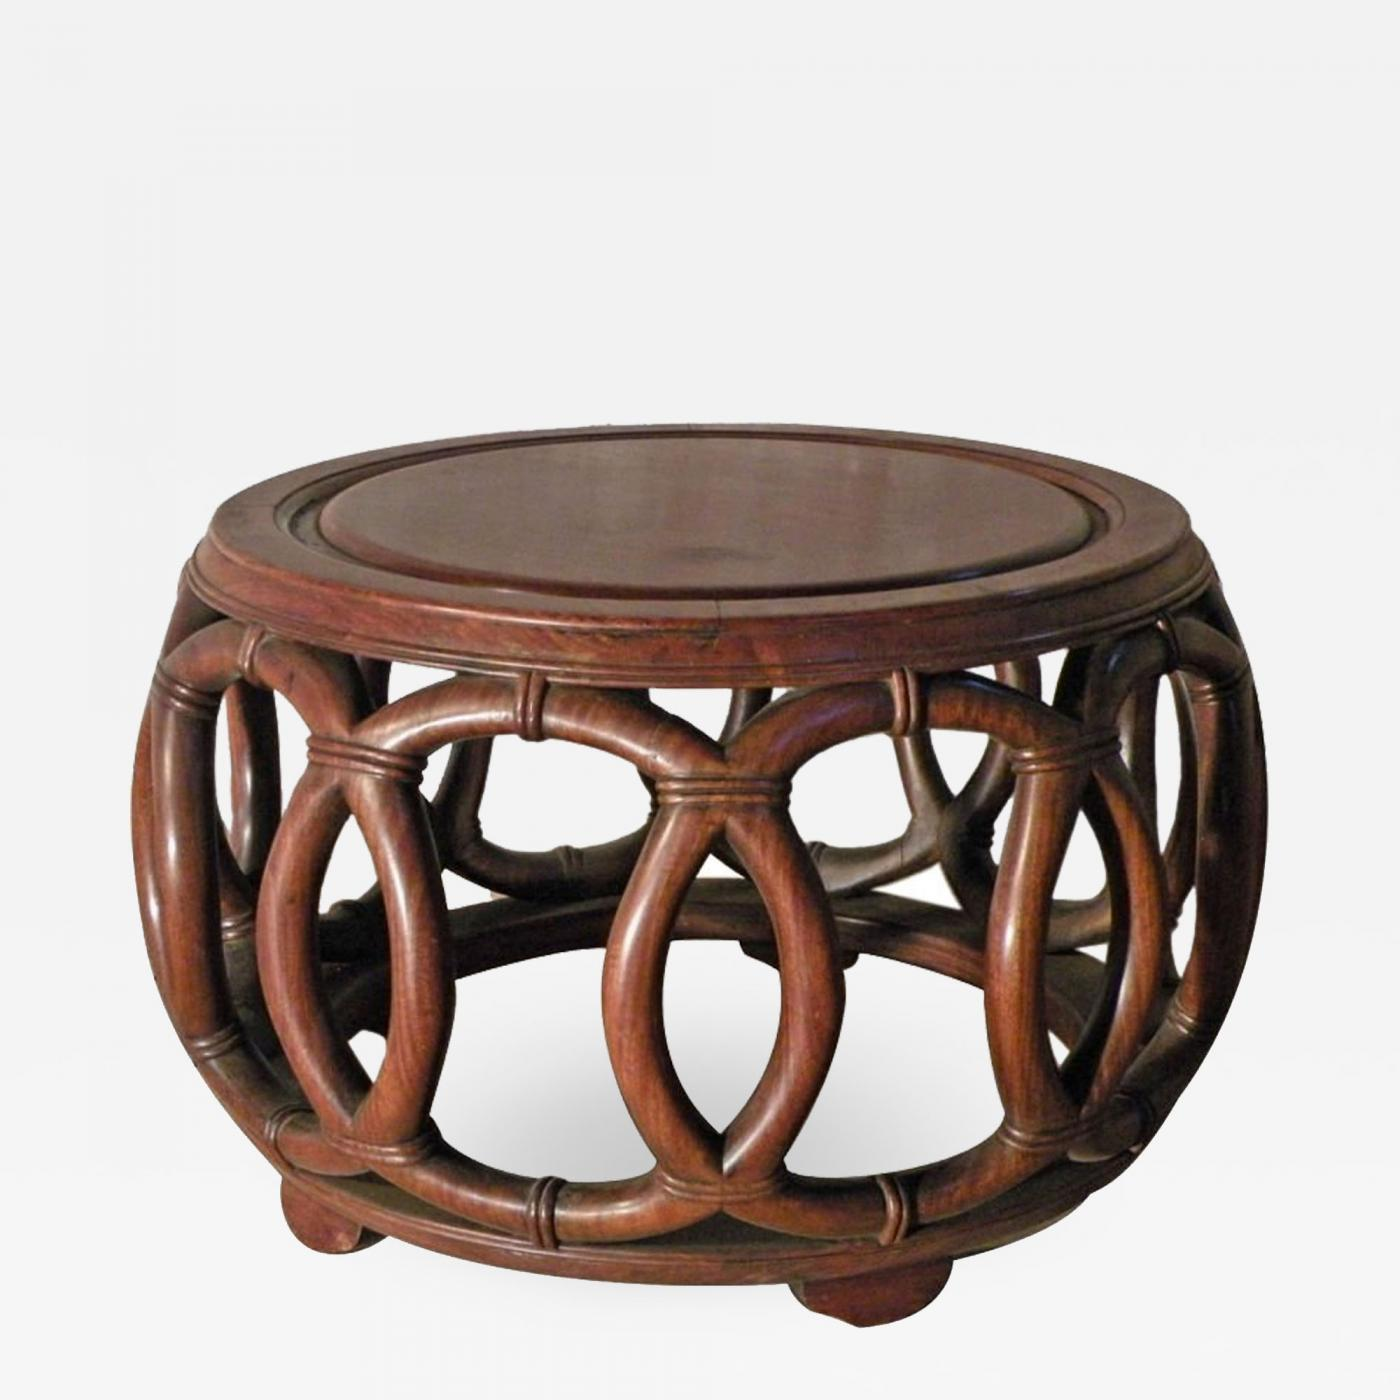 Excellent Small Round Chinese Low Table Andrewgaddart Wooden Chair Designs For Living Room Andrewgaddartcom